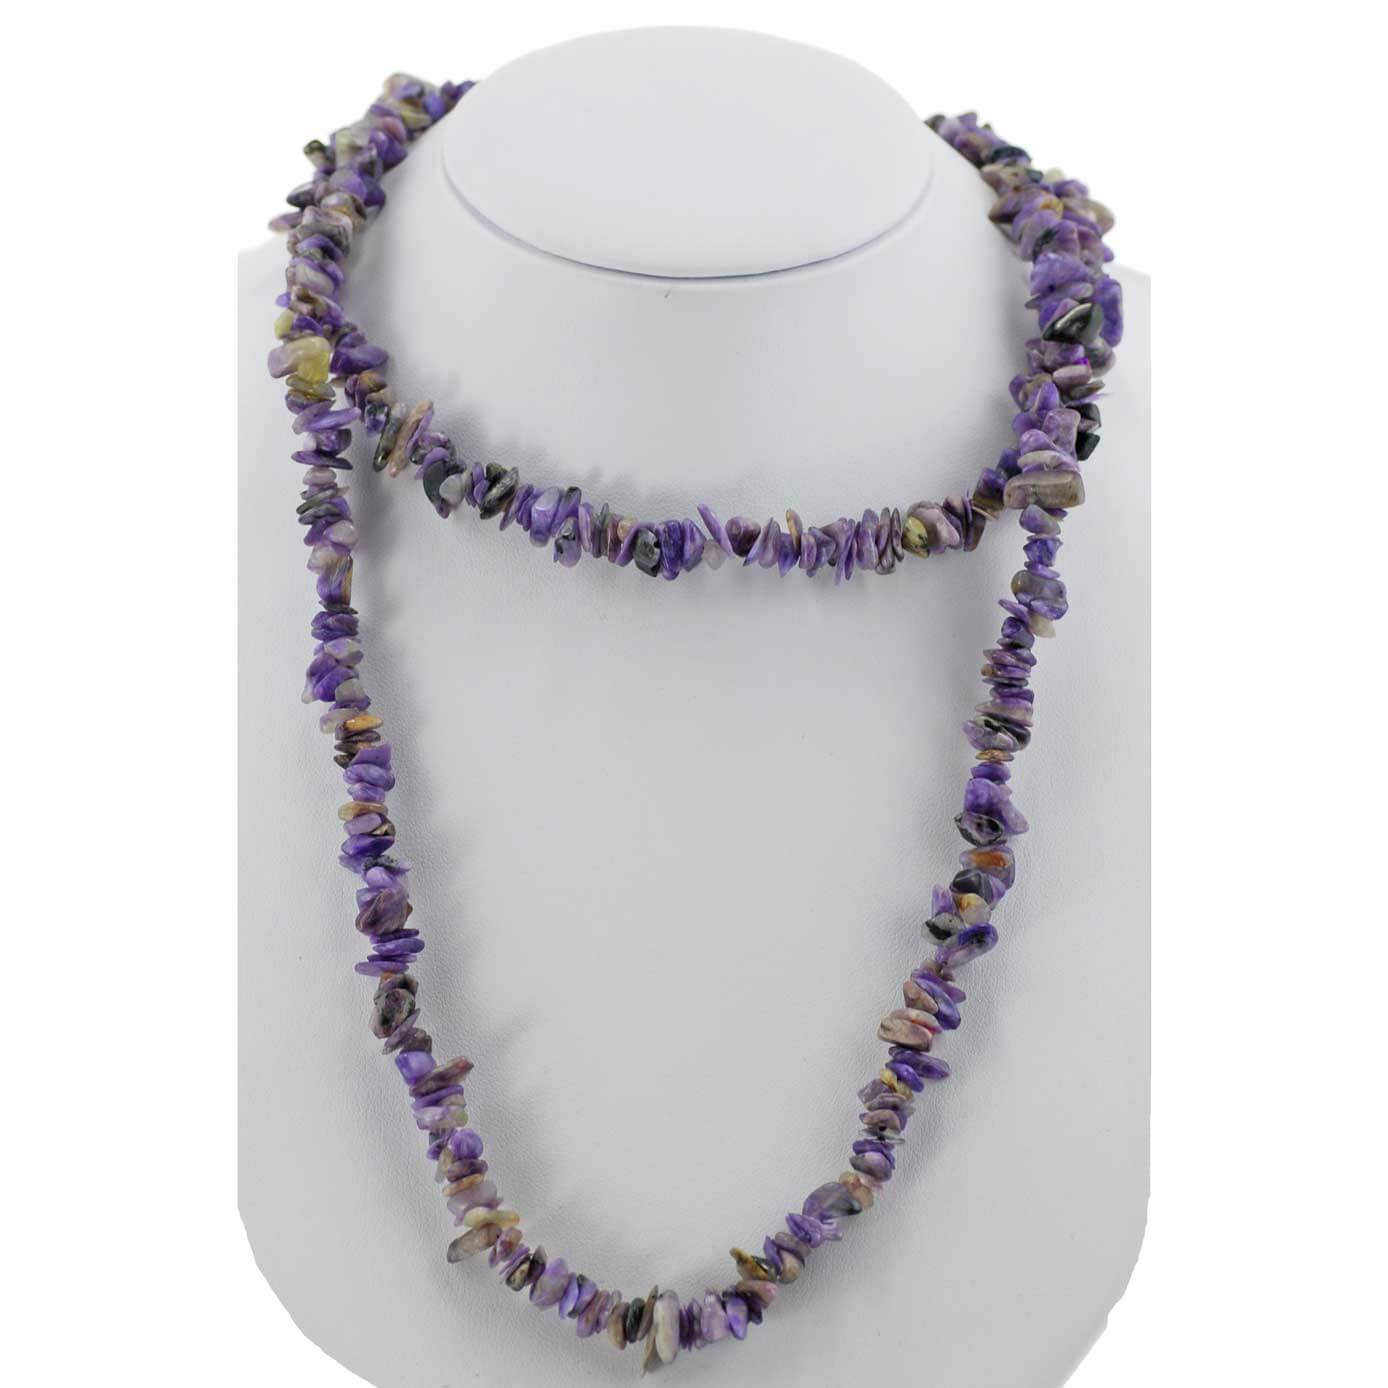 Charoite Chipped Necklace